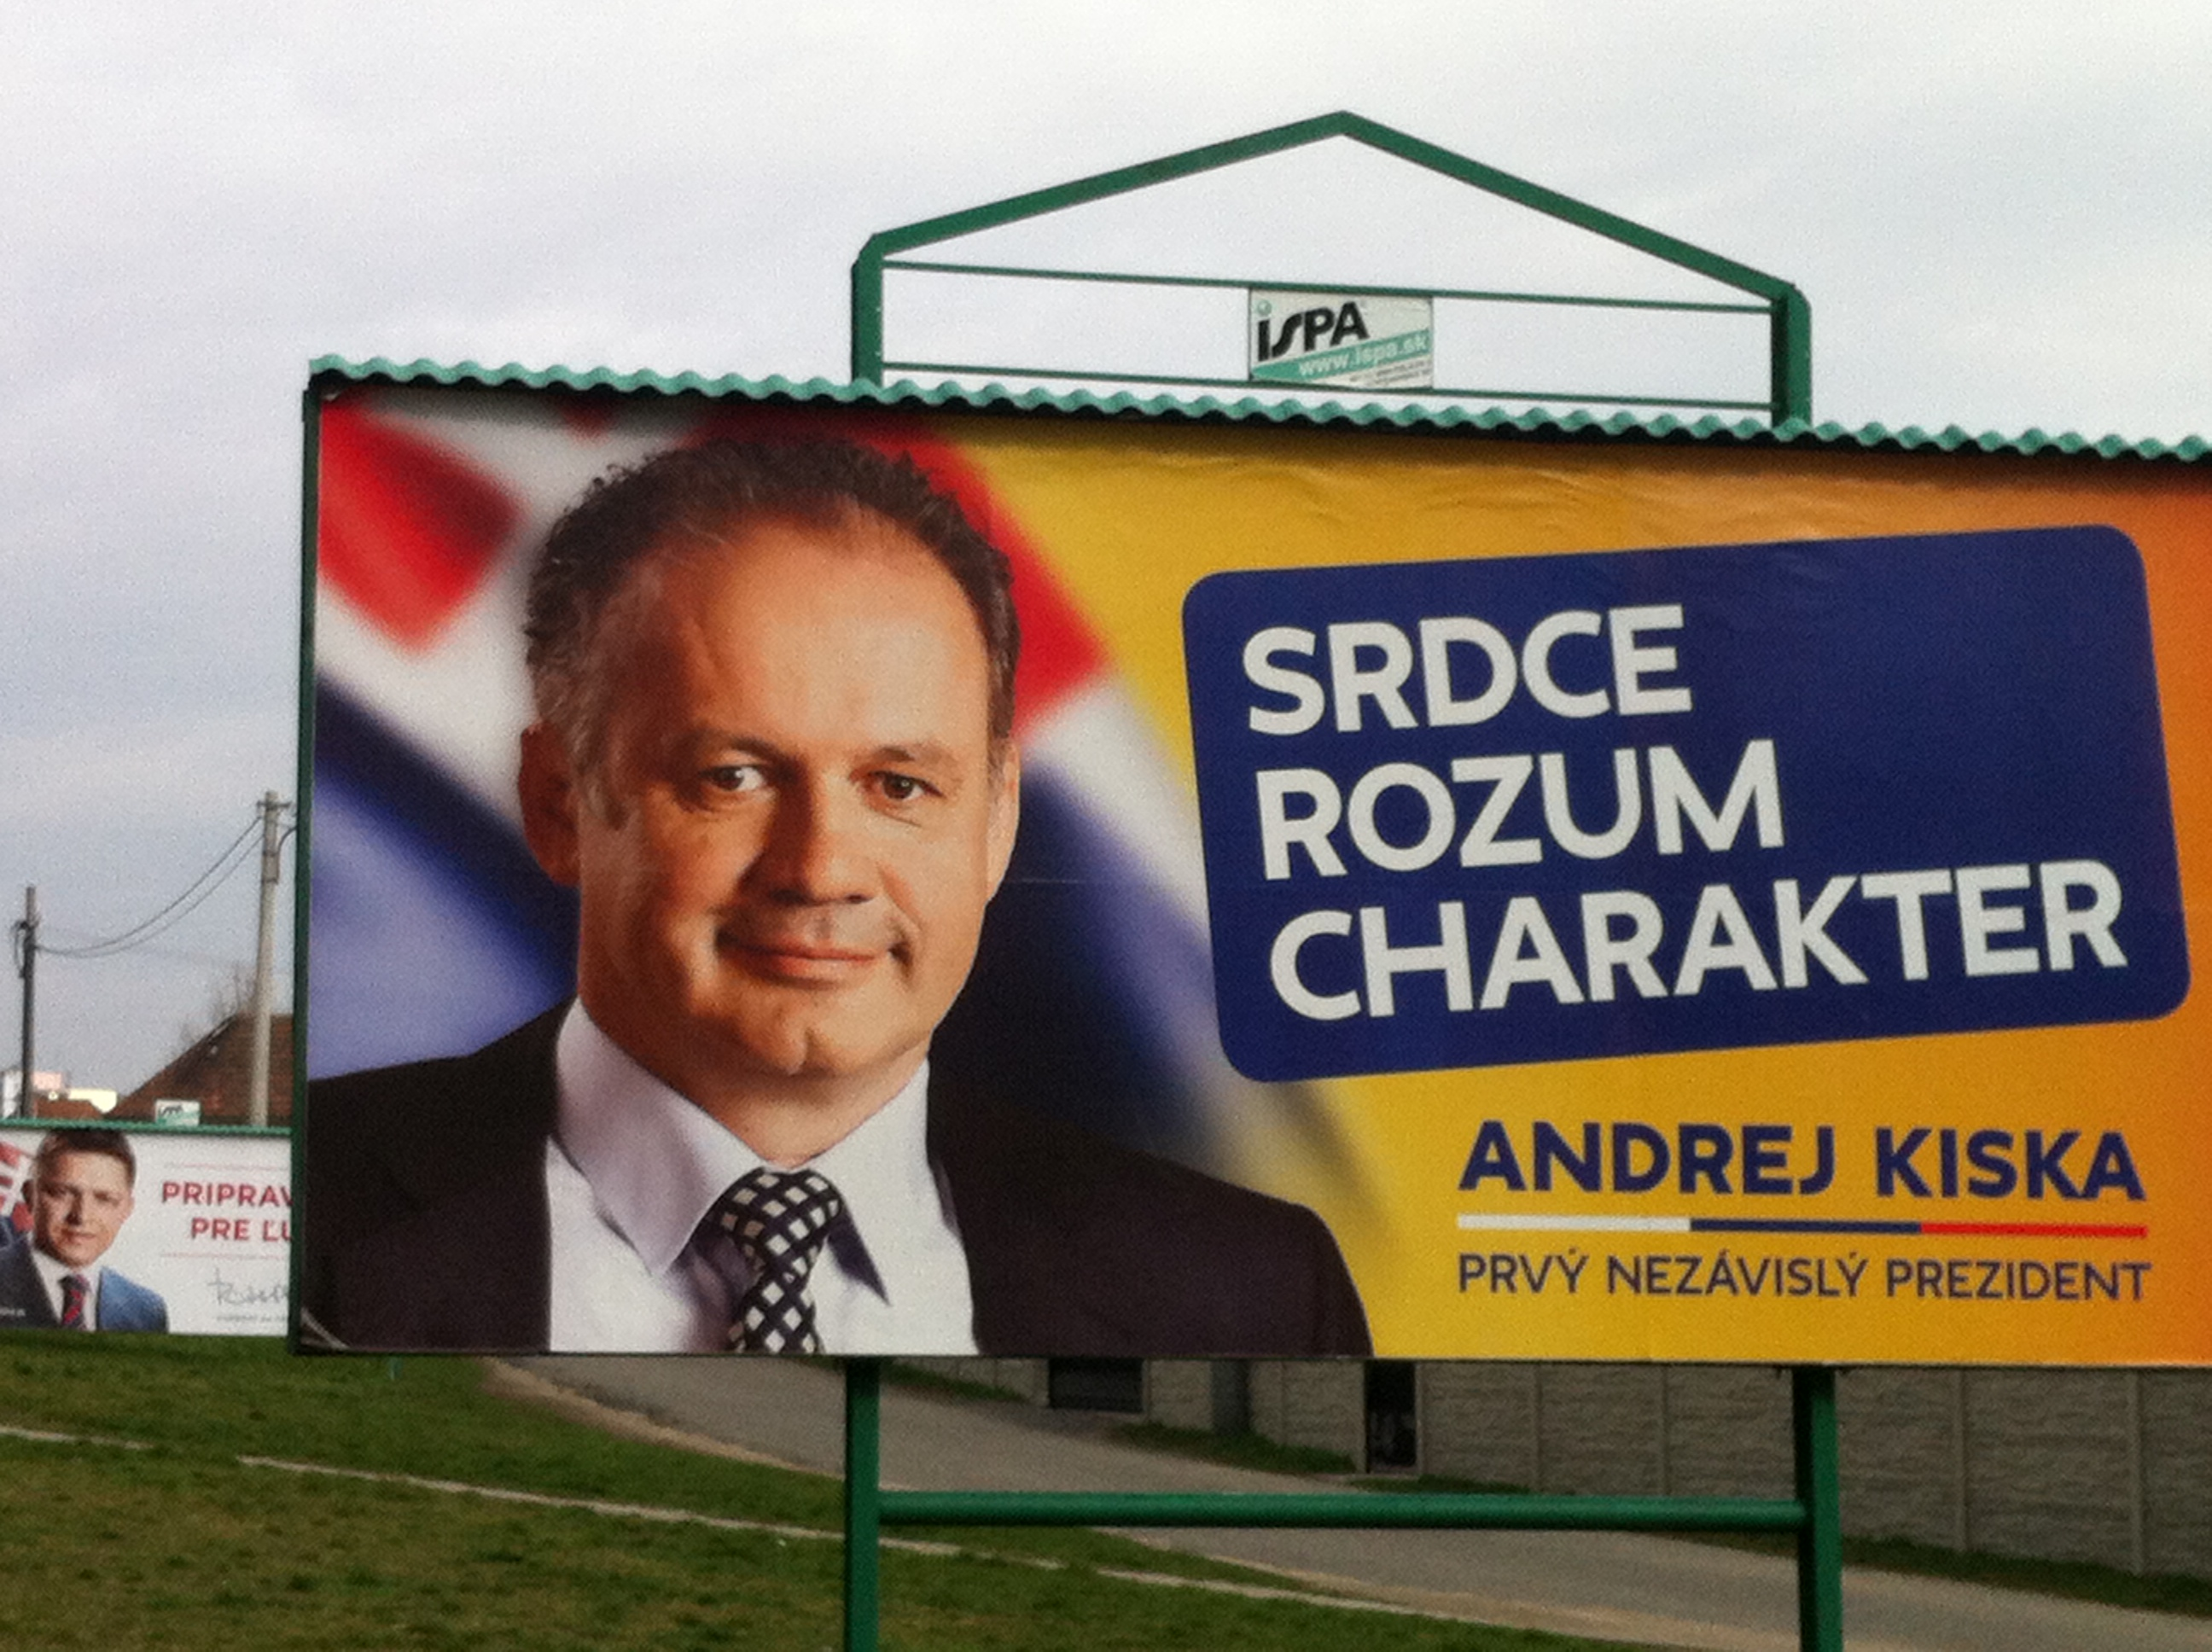 Andrej Kiska: Fico's main challenger in the Presidential race